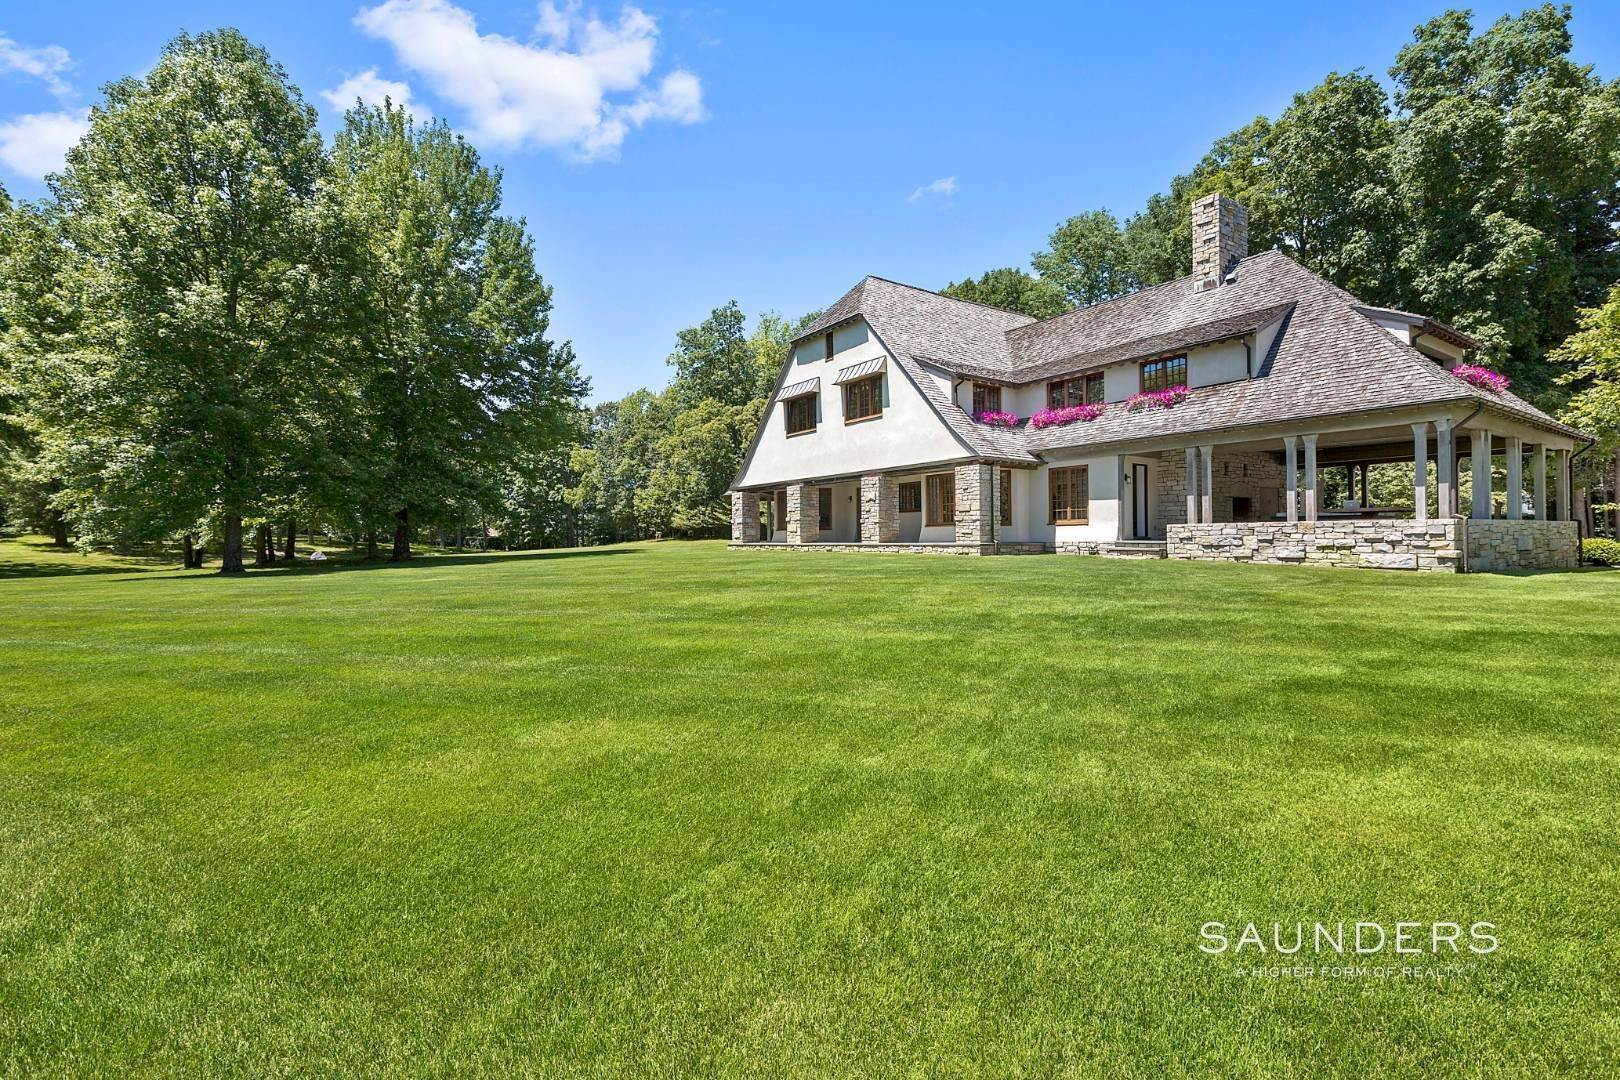 Single Family Homes for Sale at Shelter Island Estate Over 7 Acres With Pool And Cabana 41 Manhanset Road, Dering Harbor Village, Shelter Island, NY 11964